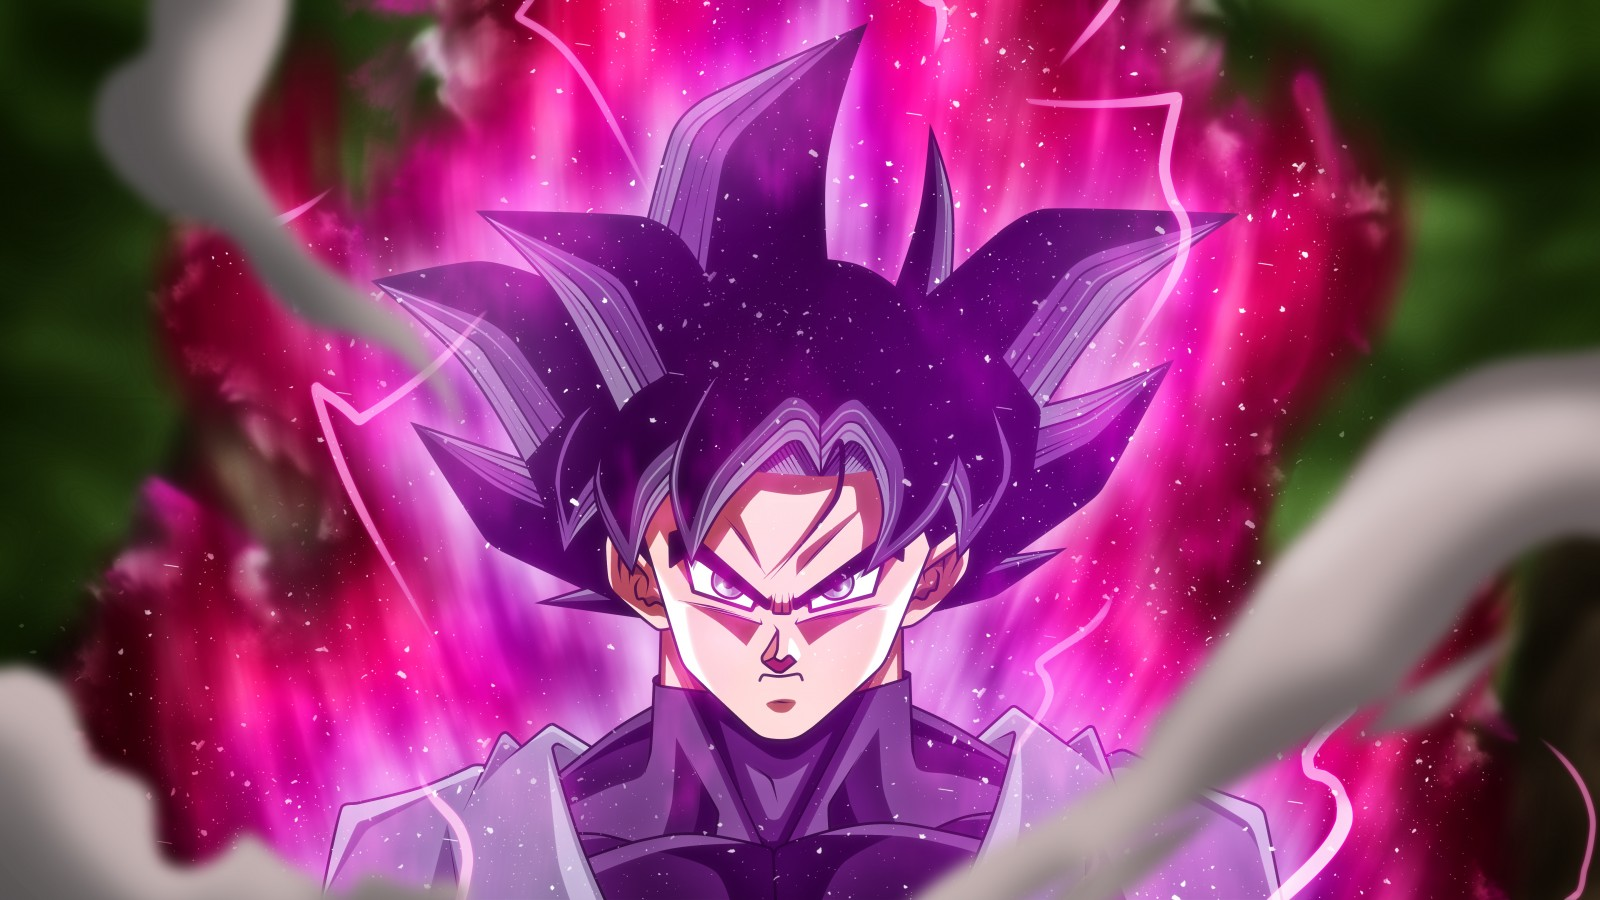 Goku Black Rose Wallpaper Posted By Ethan Peltier